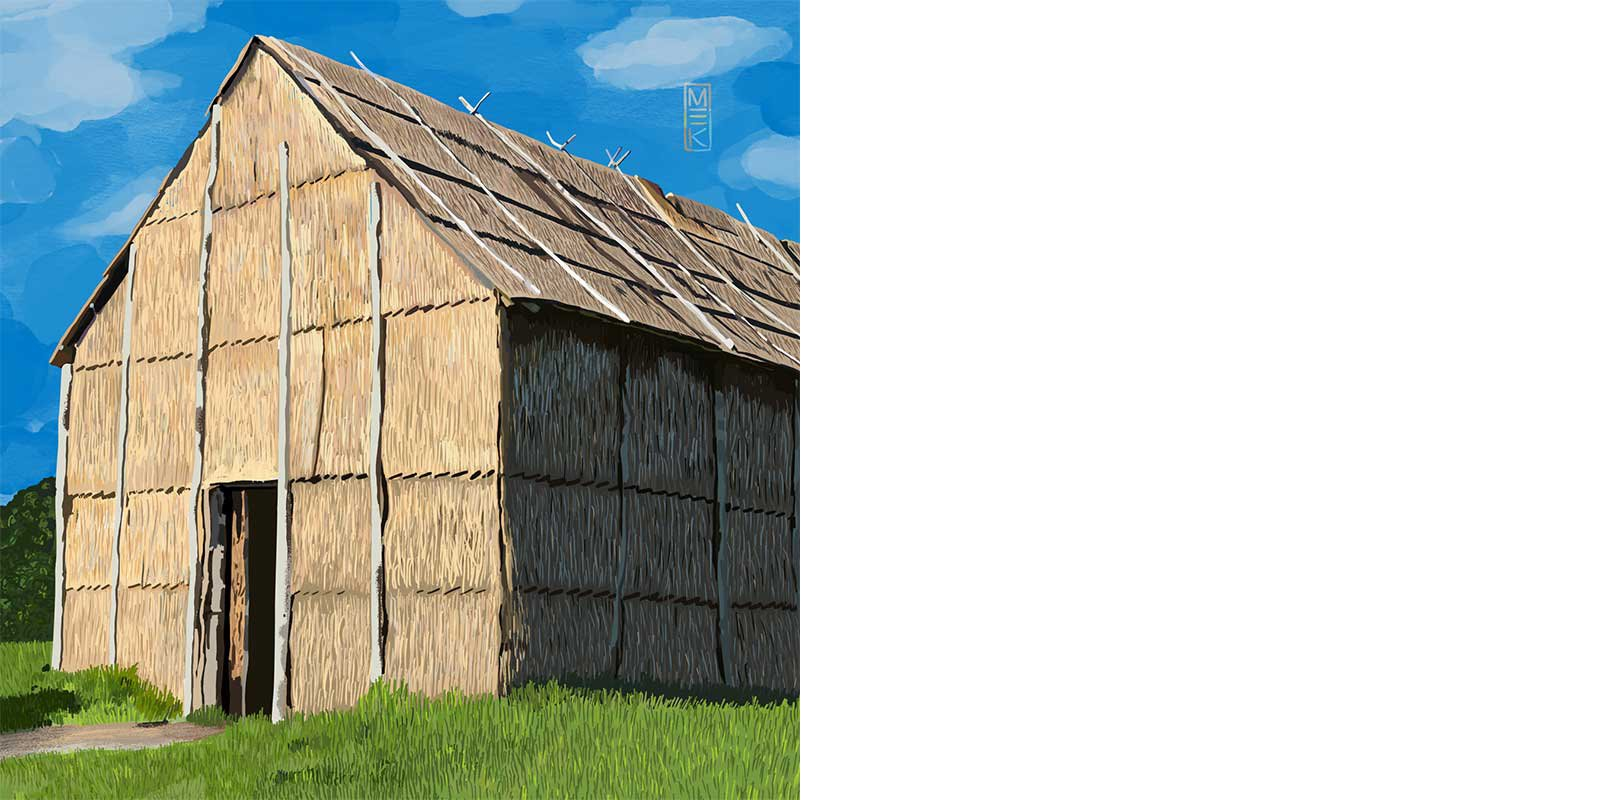 Illustration by Mek Frinchaboy of the Longhouse at Ganondagan in Victor, NY